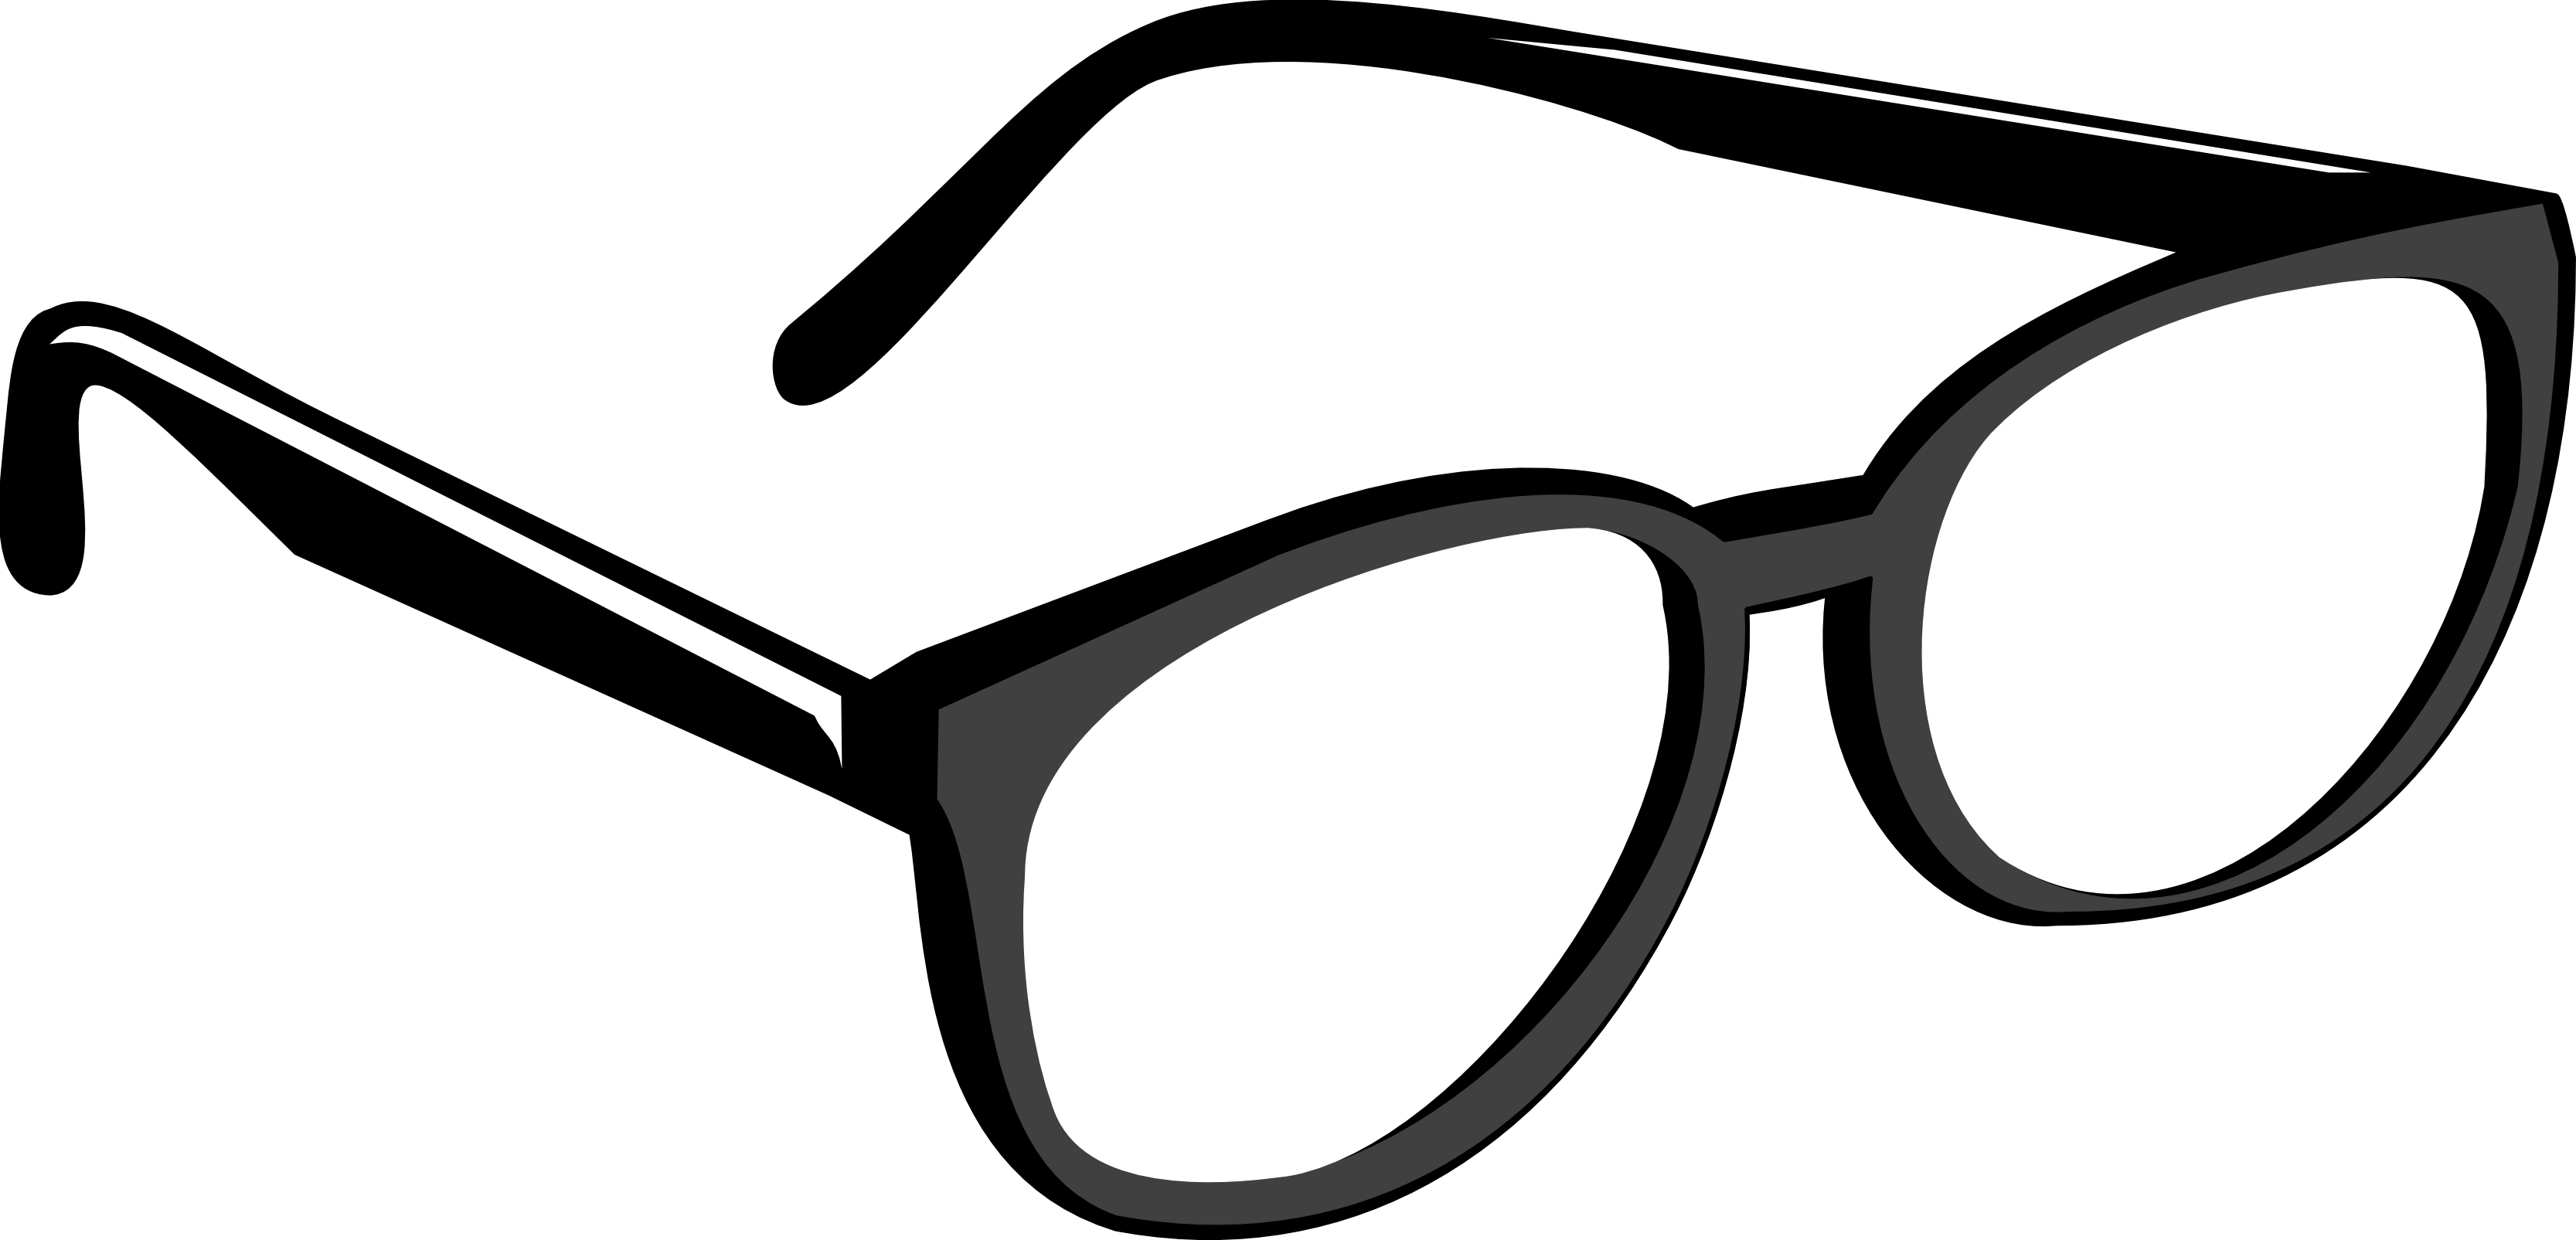 Glasses Png Image How To Draw Glasses Glasses Clip Art